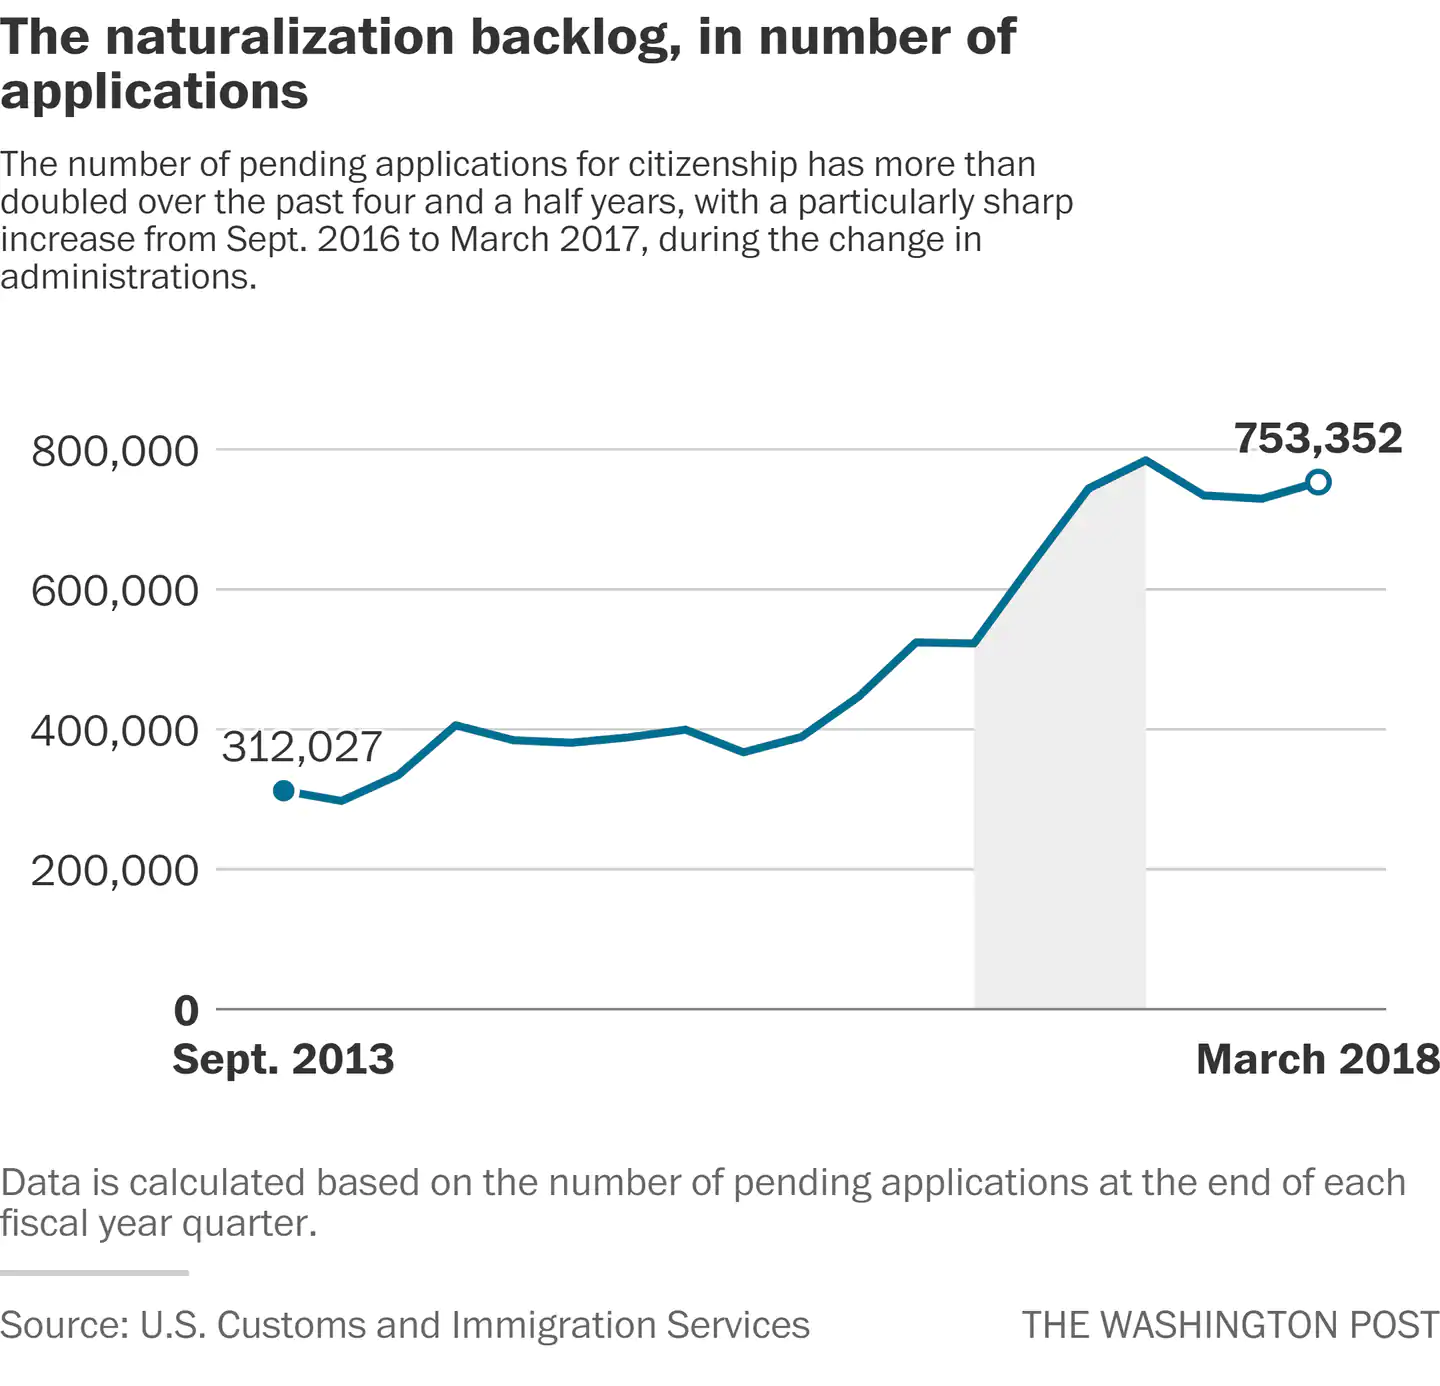 The naturalization backlog, in number of applications